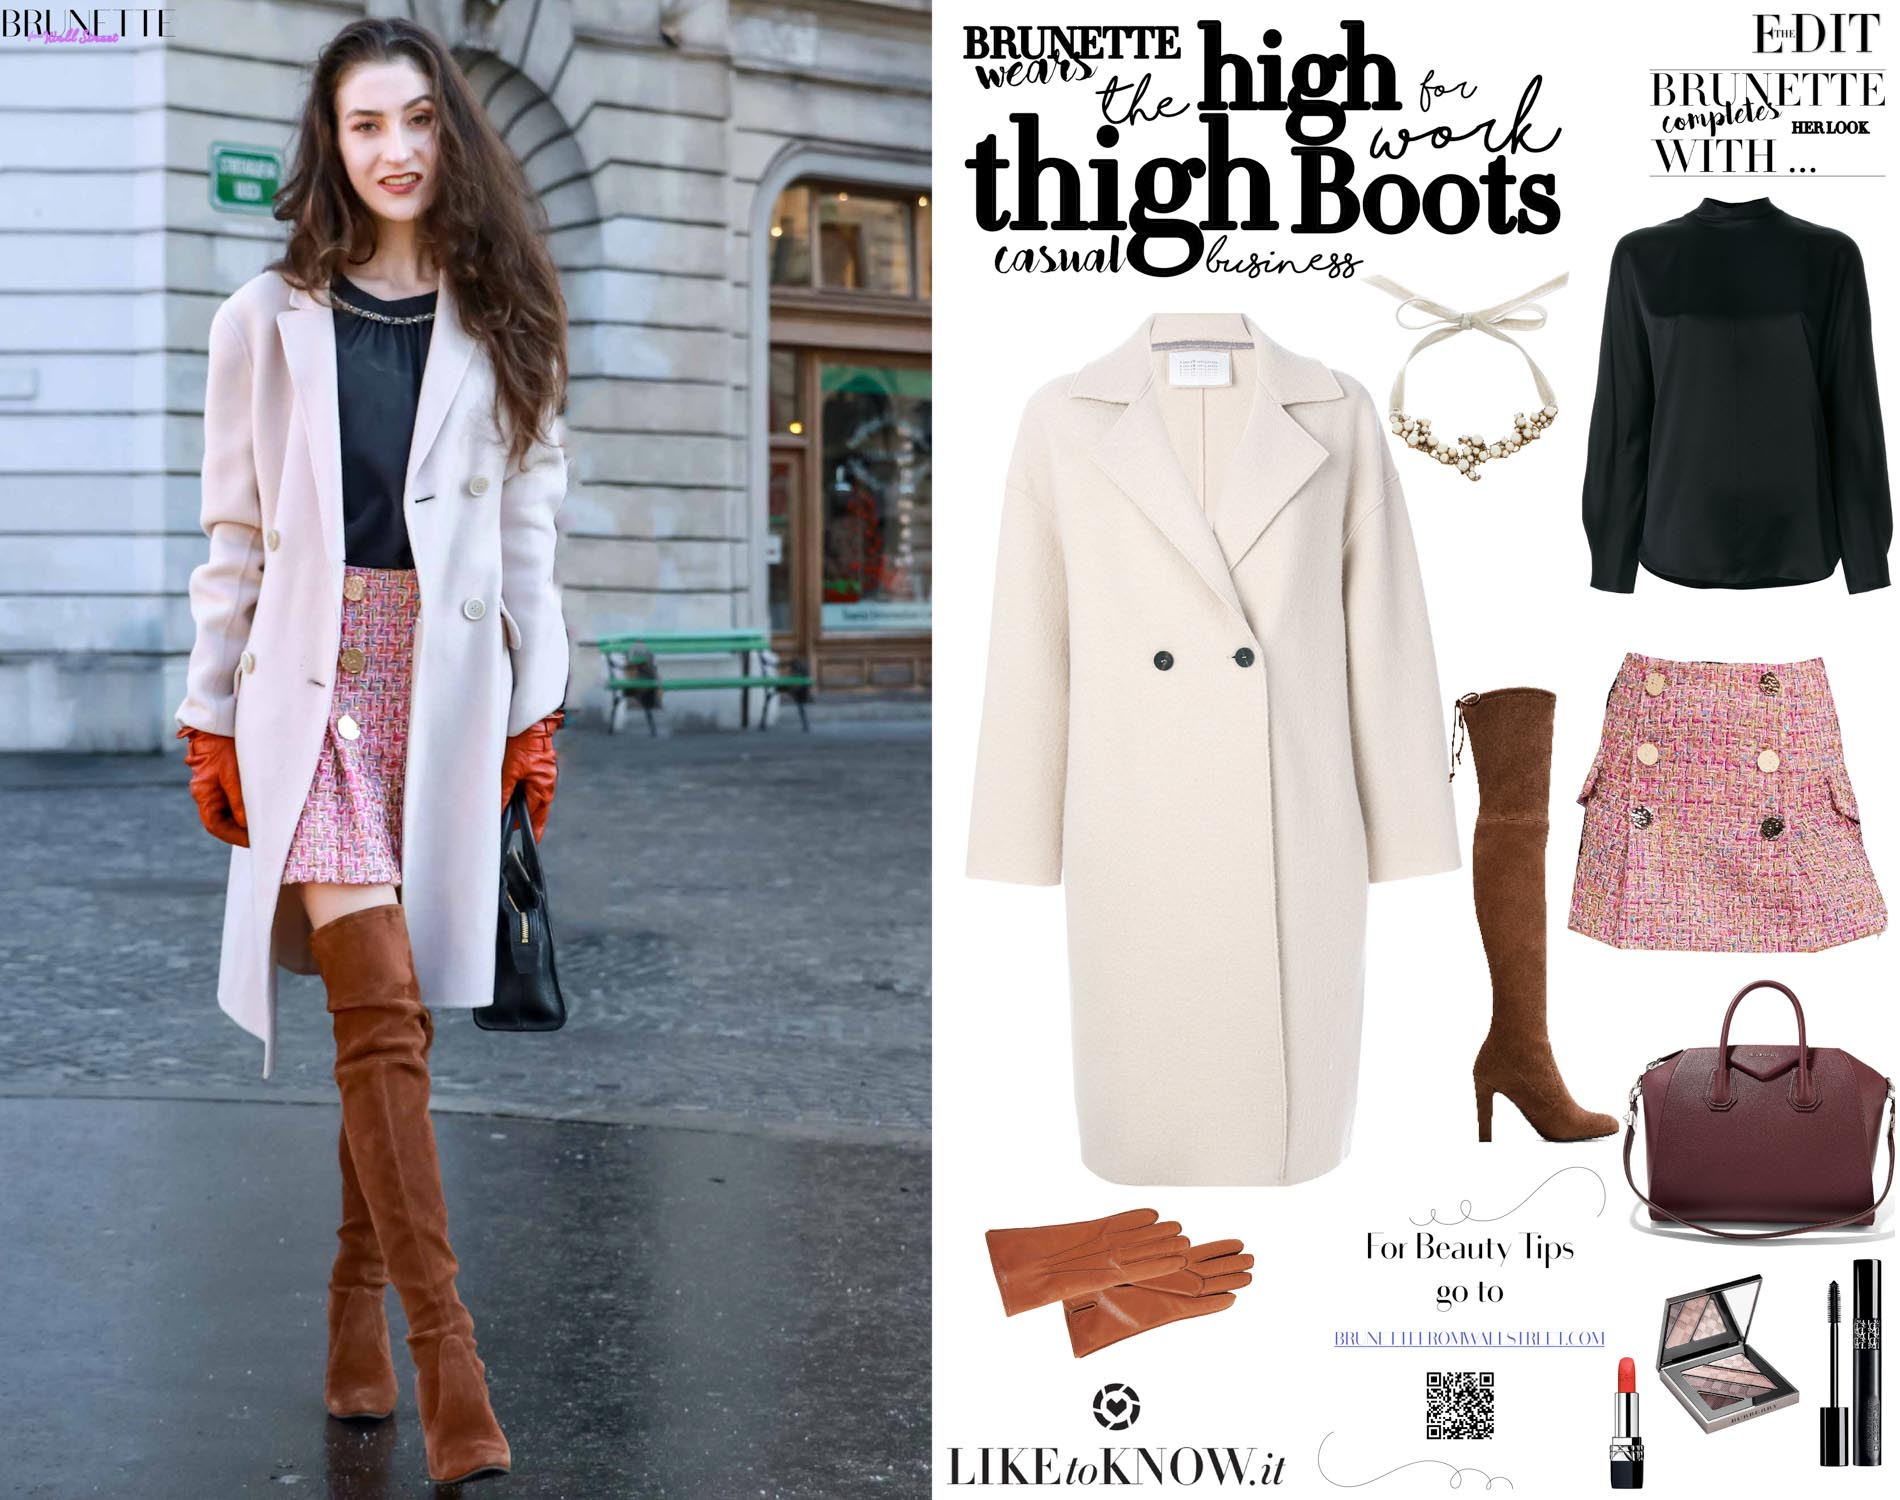 cf673d4aca5 How to wear over the knee boots for work